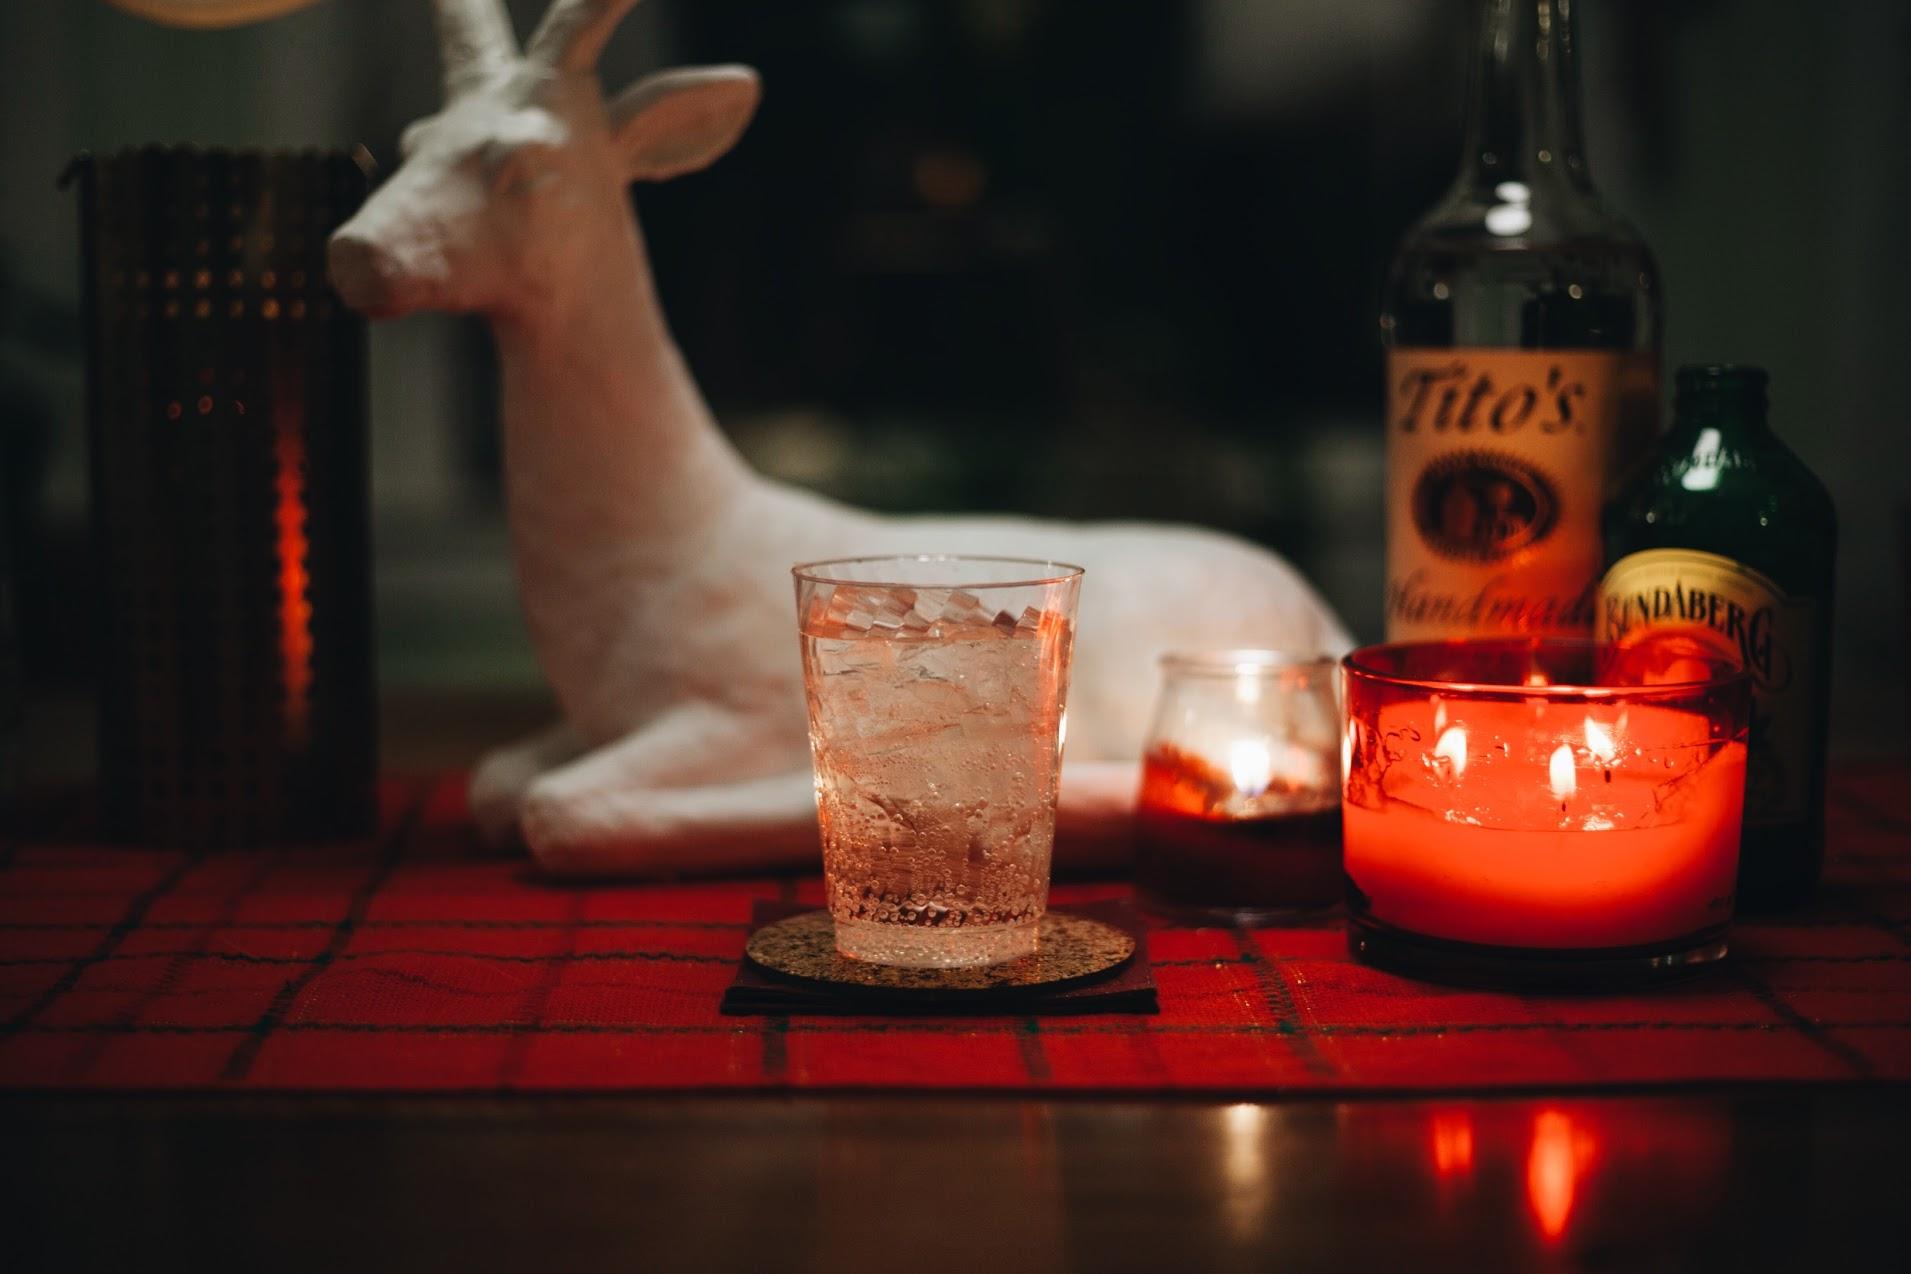 Tito's Moscow Mule - 1.5 oz Tito's Handmade Vodka0.5 oz fresh squeezed lime juice3 oz ginger beer